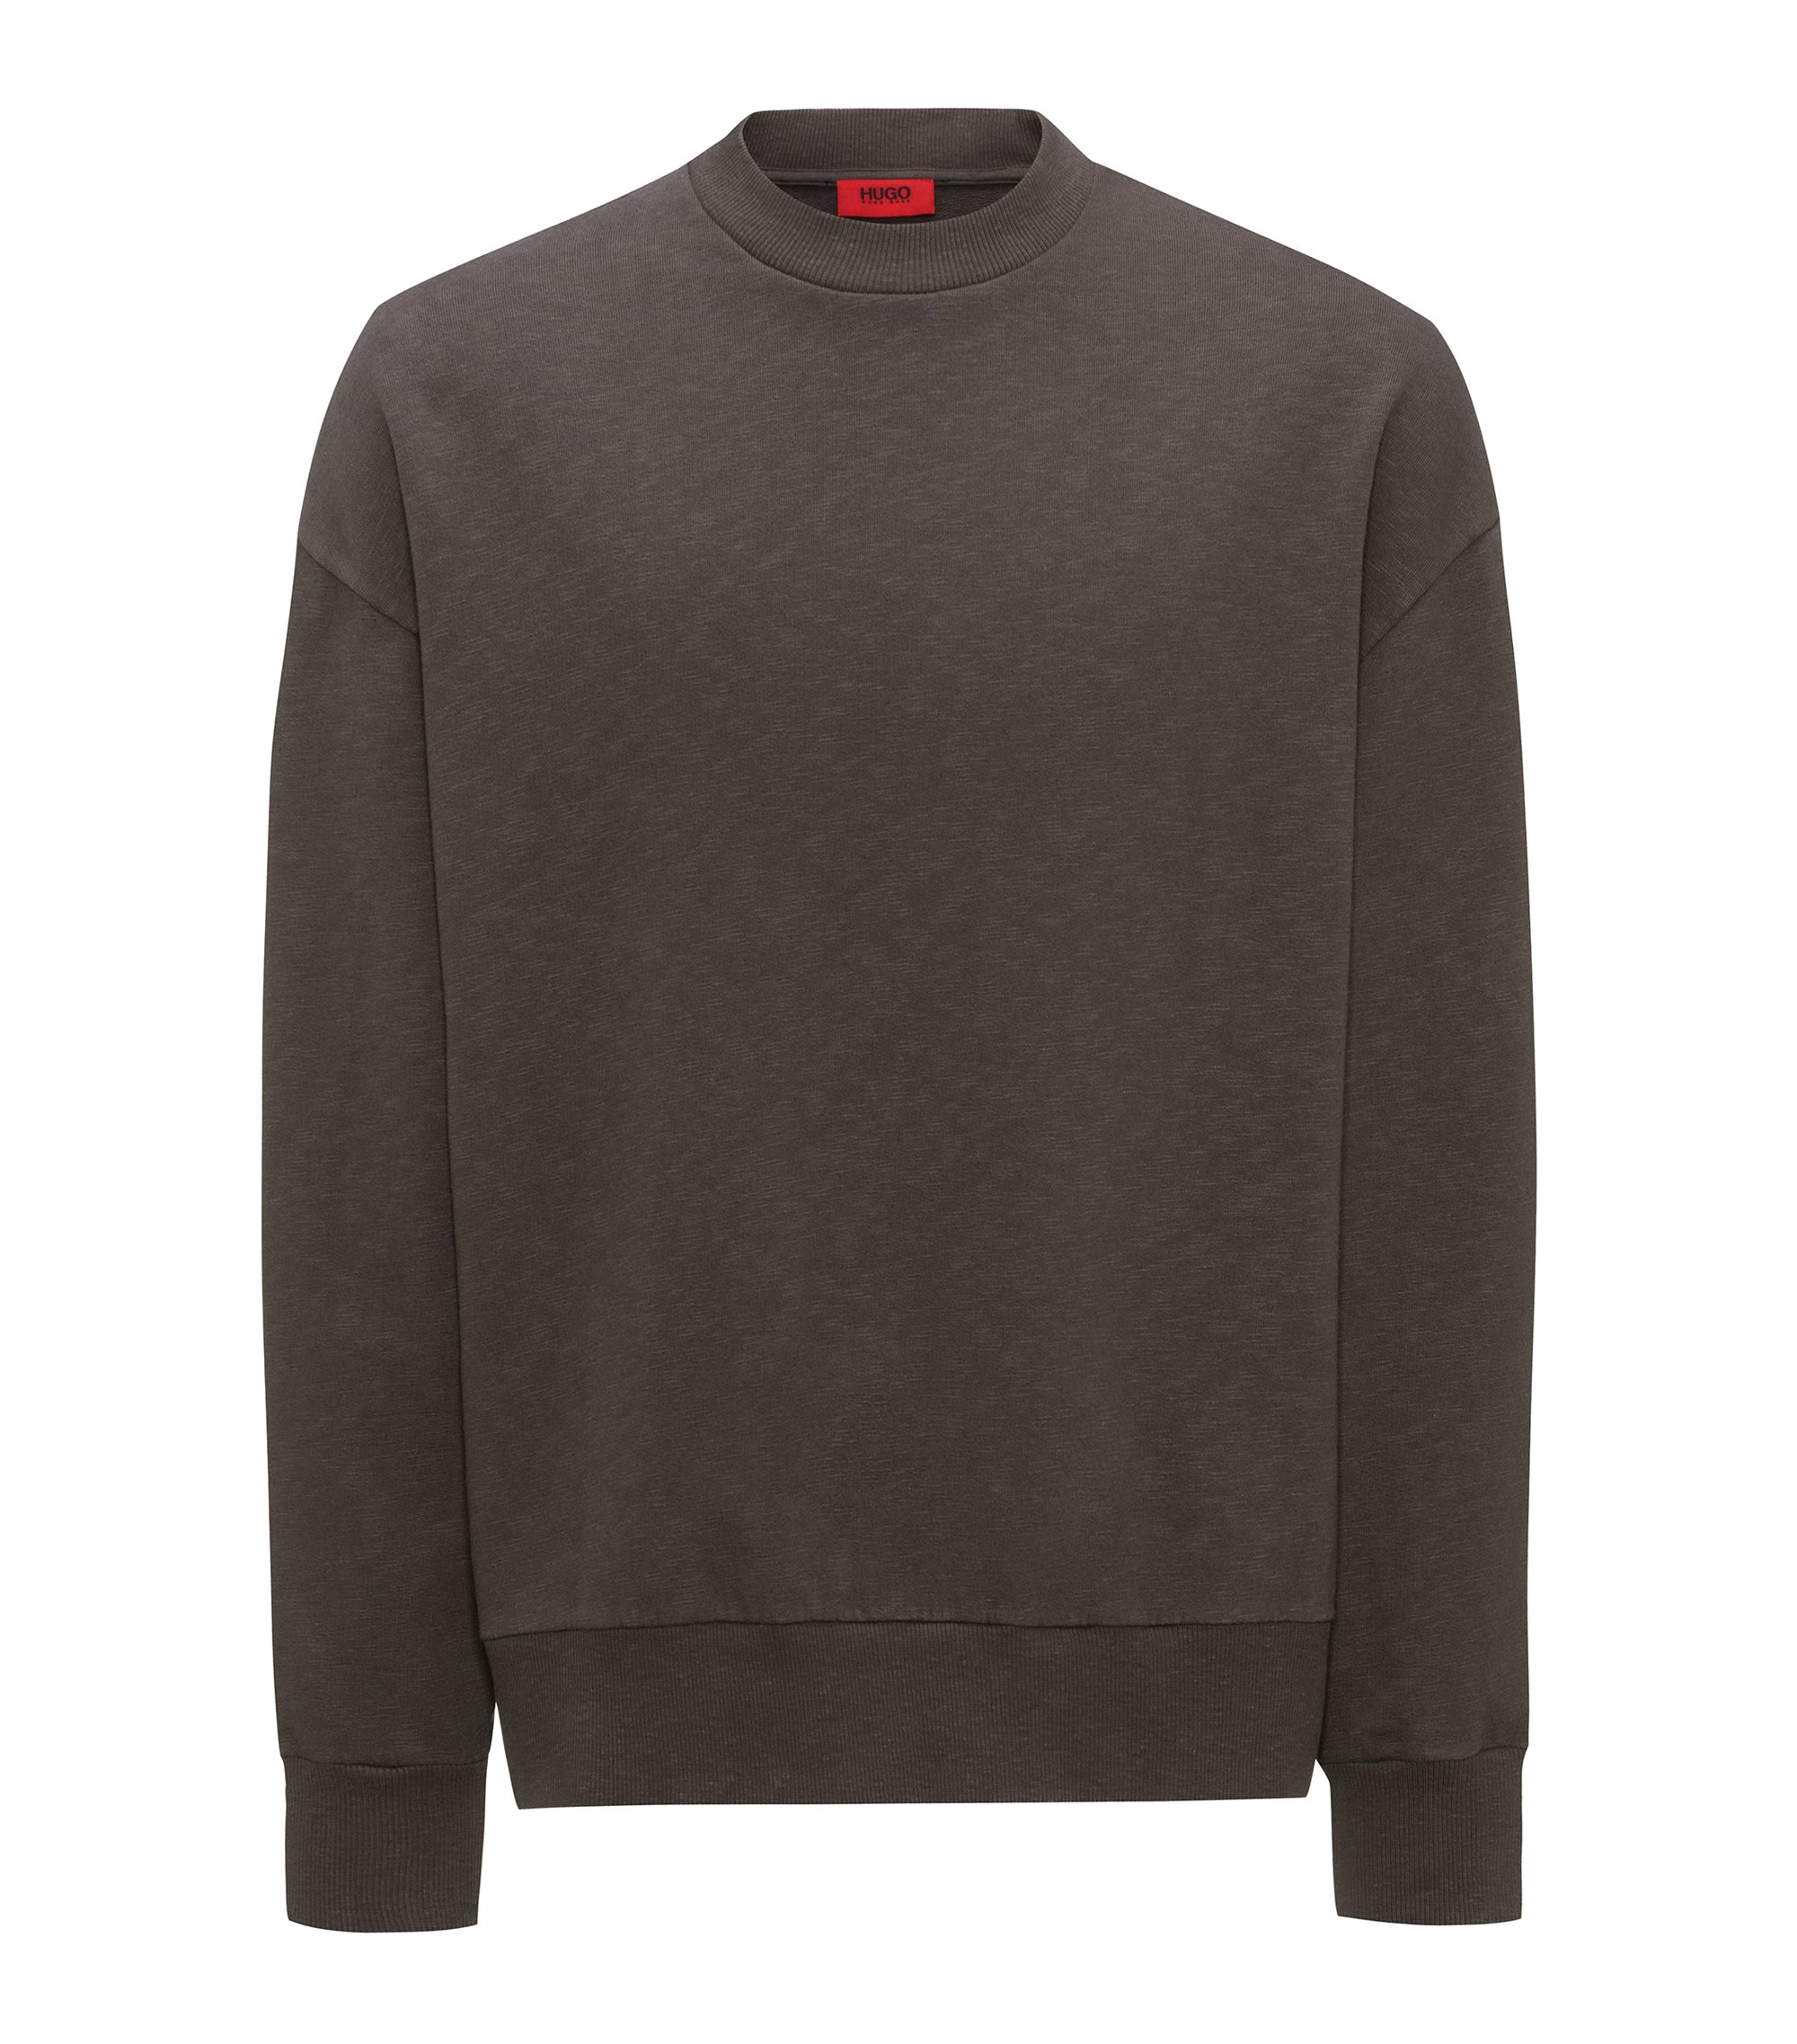 Oversized-fit sweatshirt in slub French terry, Brown